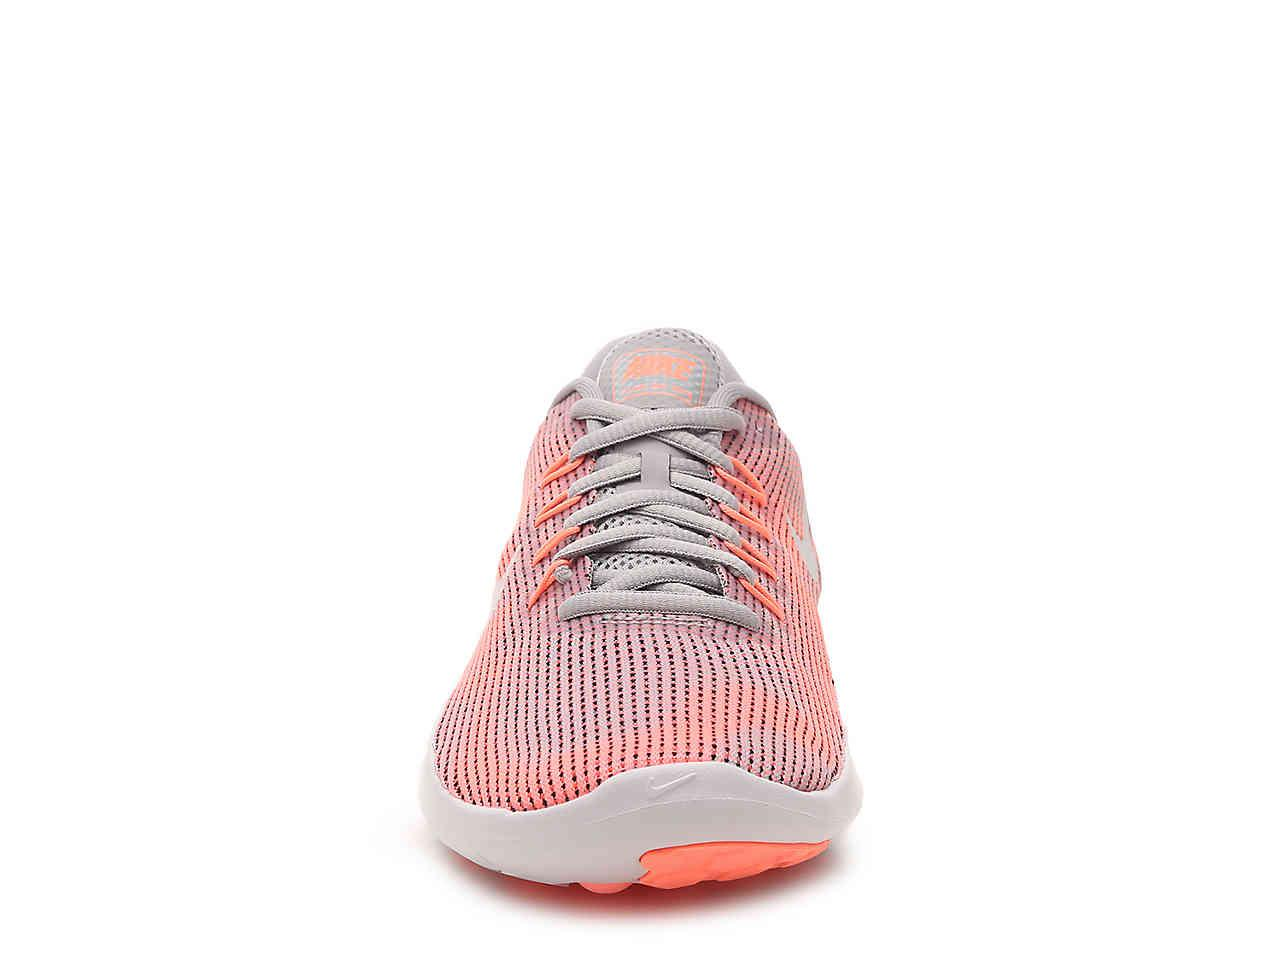 finest selection 5d73b aa307 ... official view fullscreen 2f6d0 ef274 official view fullscreen 2f6d0  ef274  promo code for nike shoes sneakers tennis shoes running shoes dsw ...